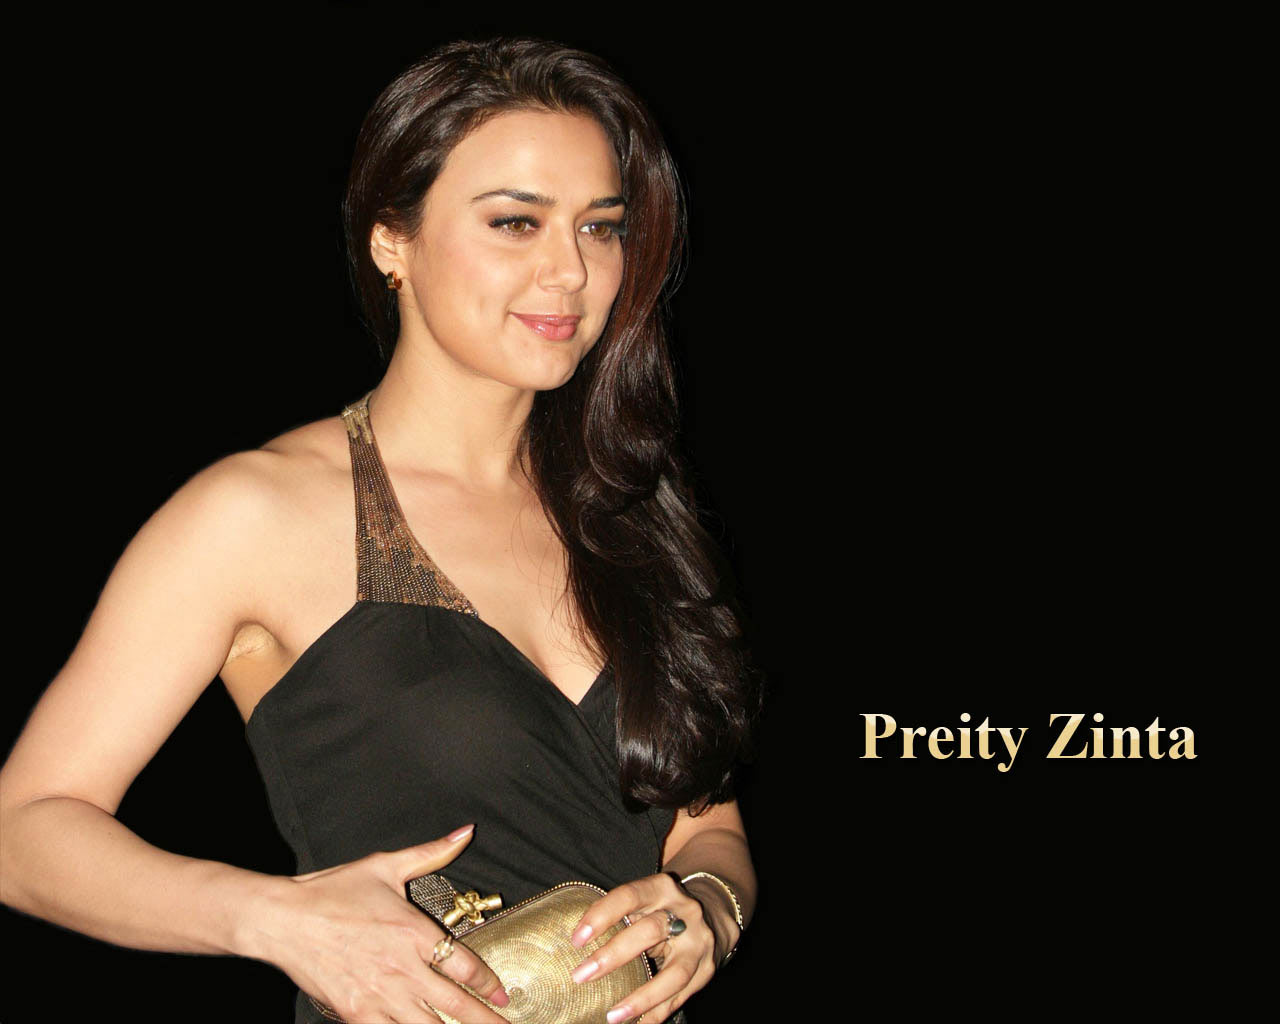 Regionves Hot Wallpapers Of Preity Zinta Part 1